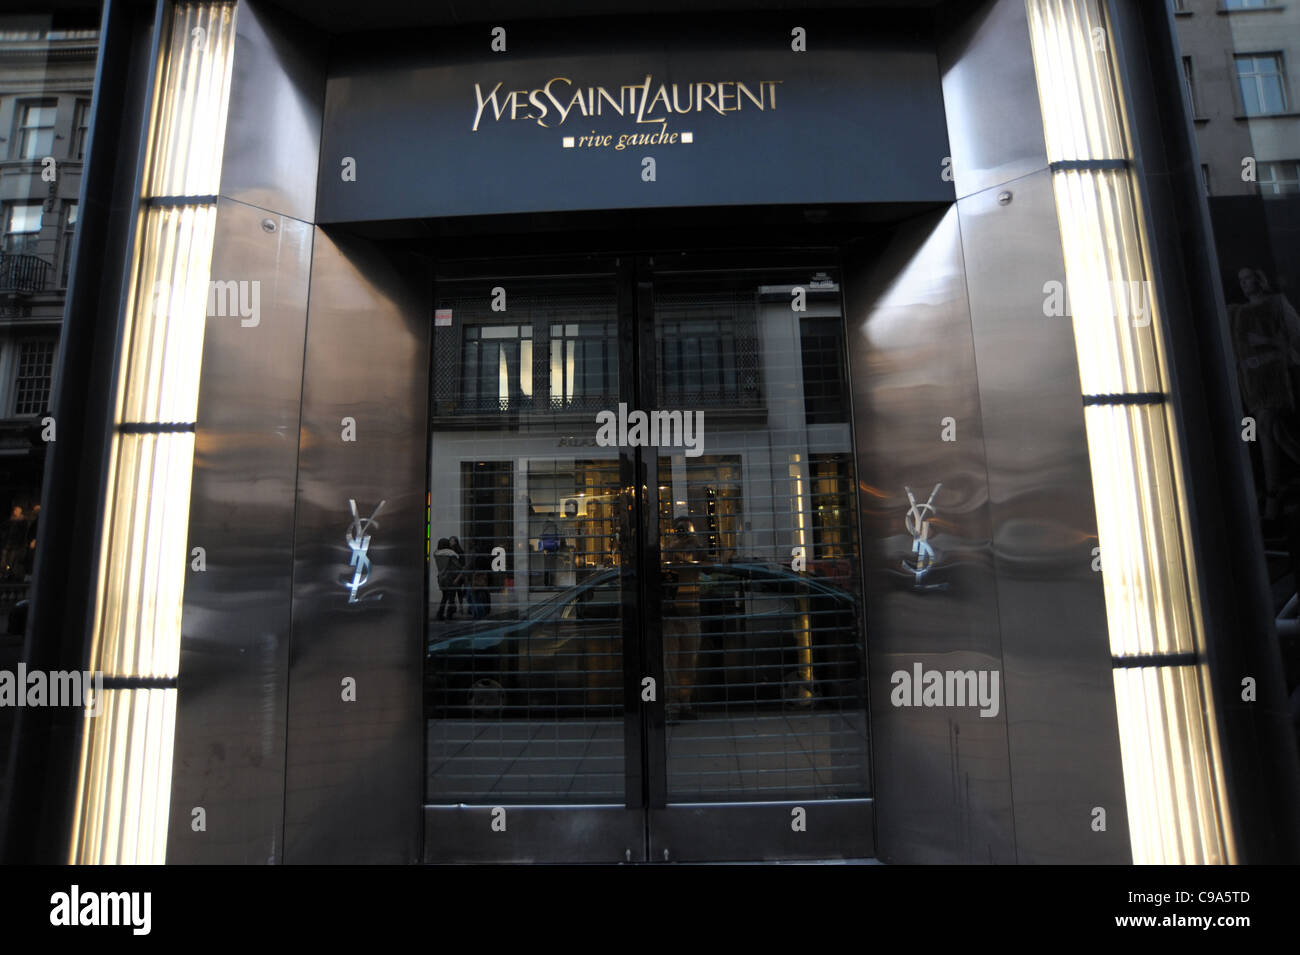 yves saint laurent store front stock photos yves saint laurent store front stock images alamy. Black Bedroom Furniture Sets. Home Design Ideas